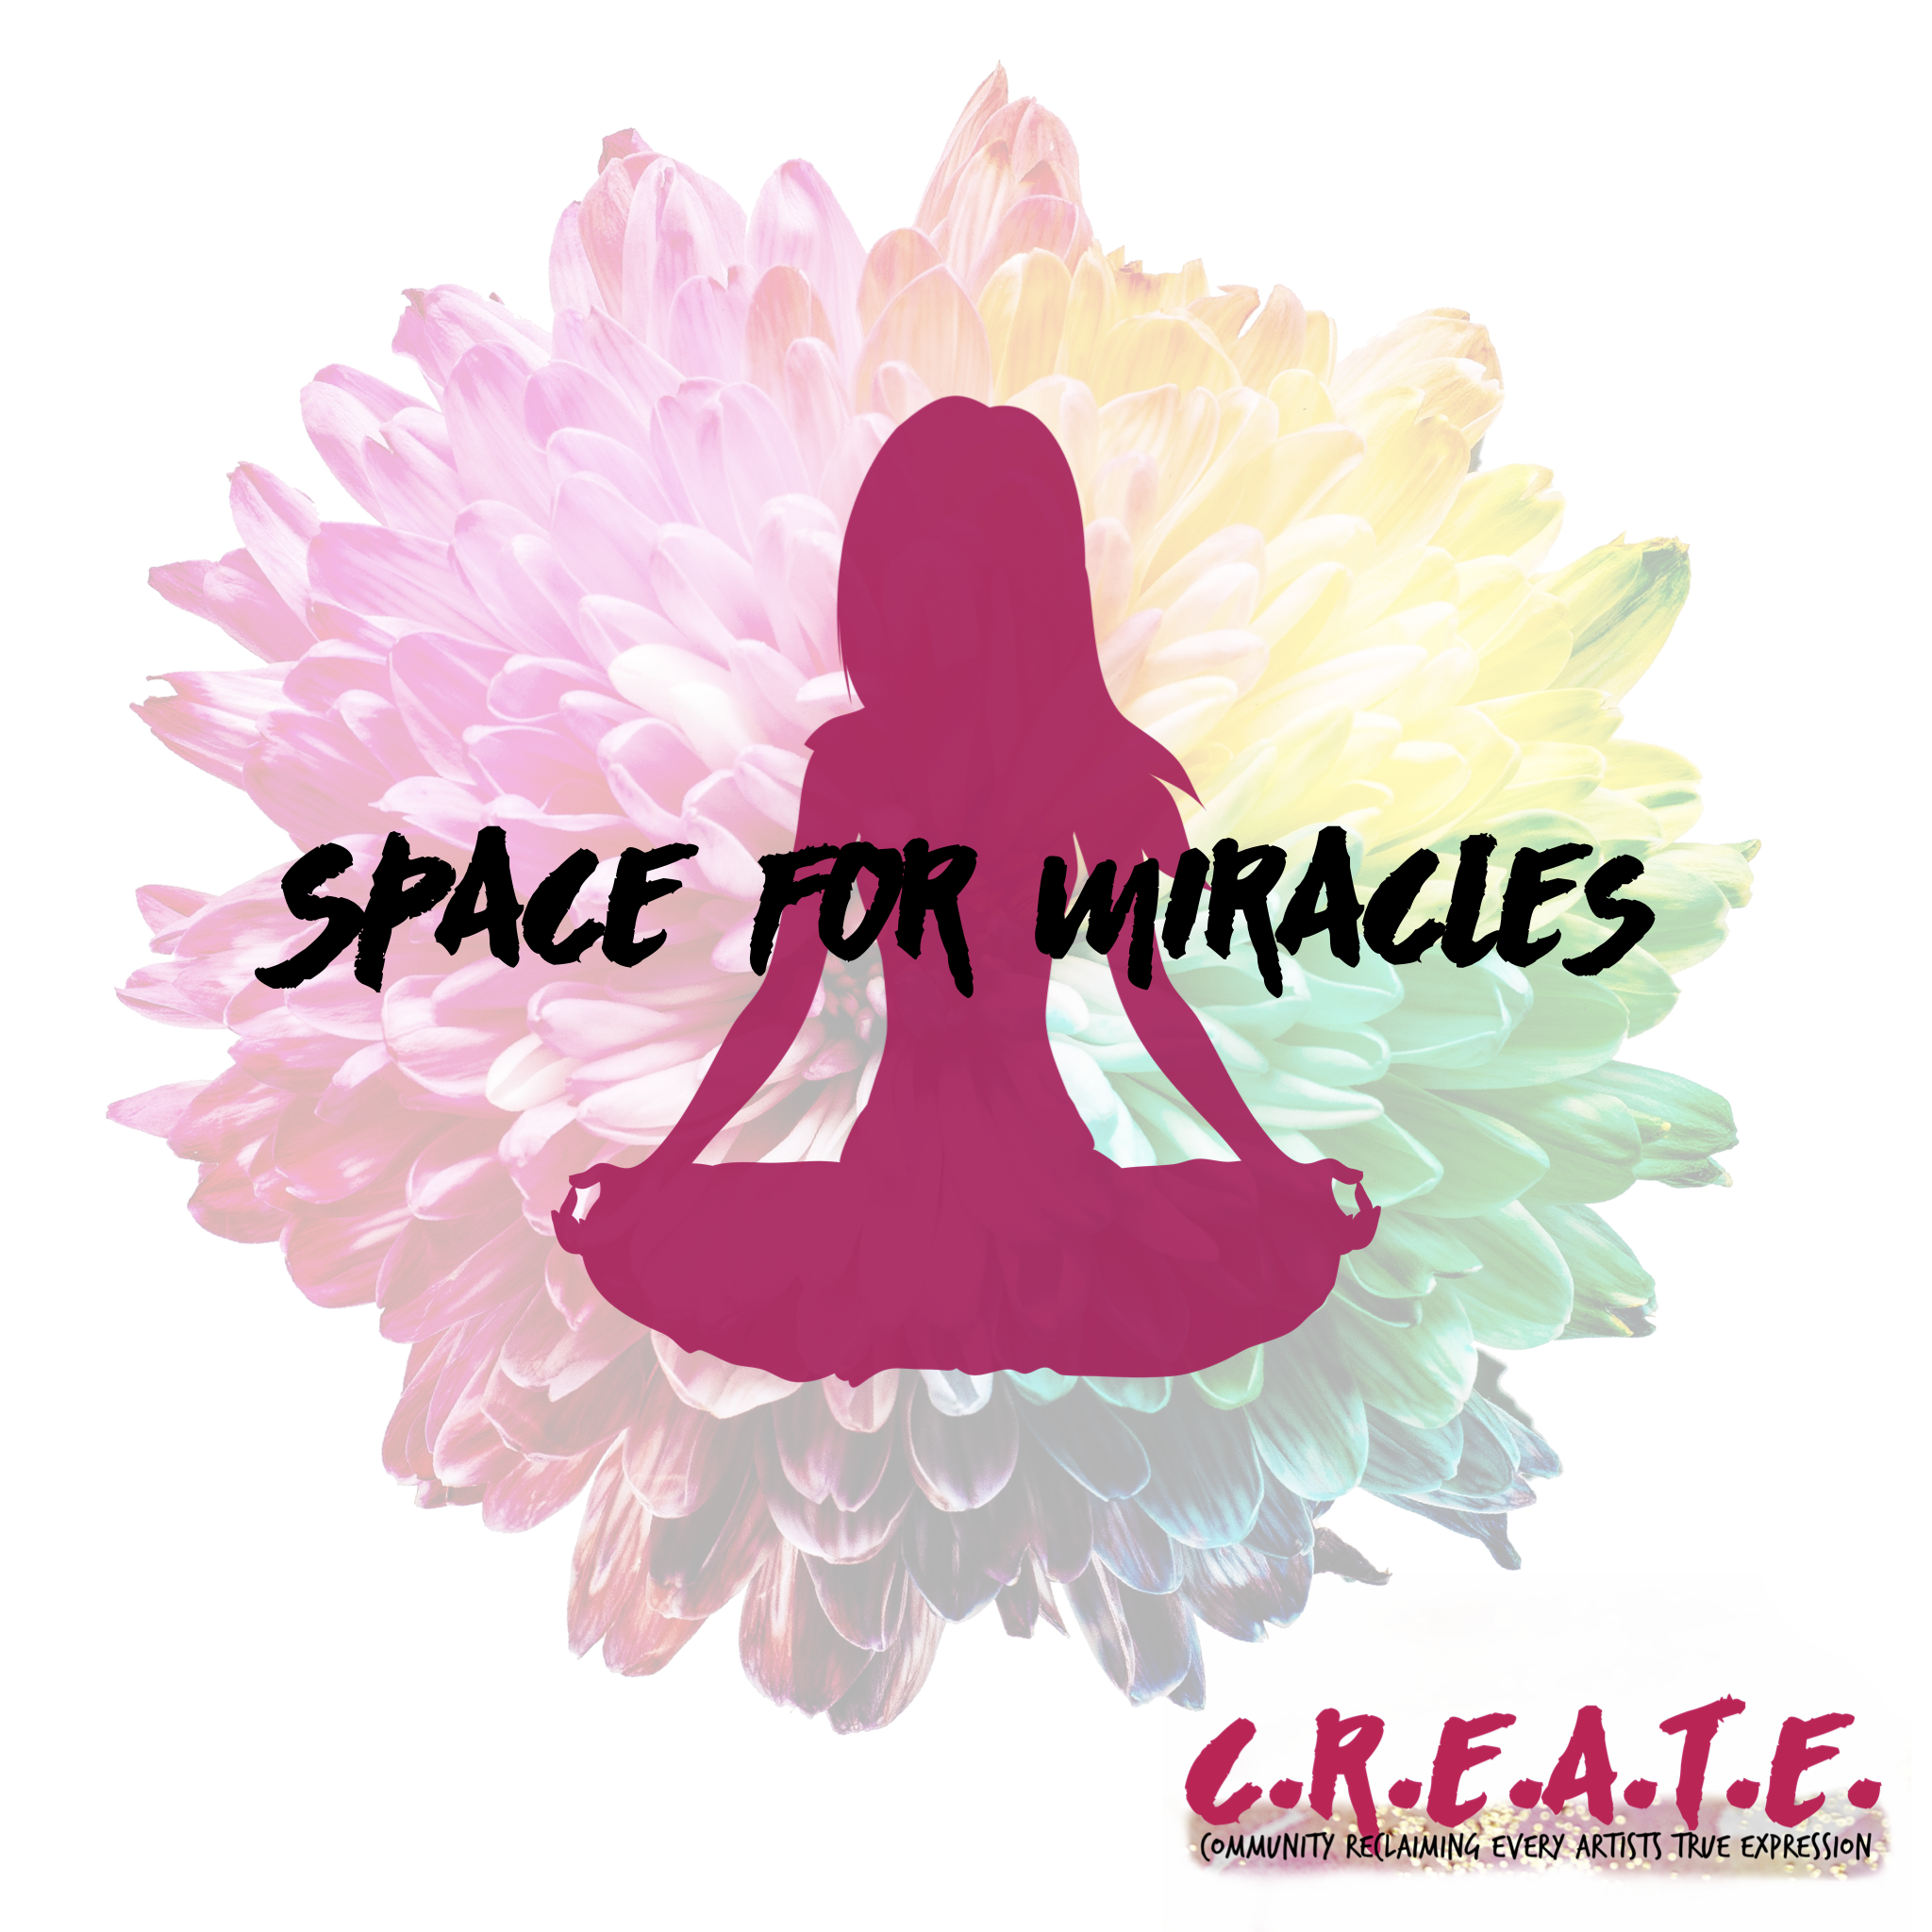 Space For Miracles - $1.99 - Click Image To Purchase!